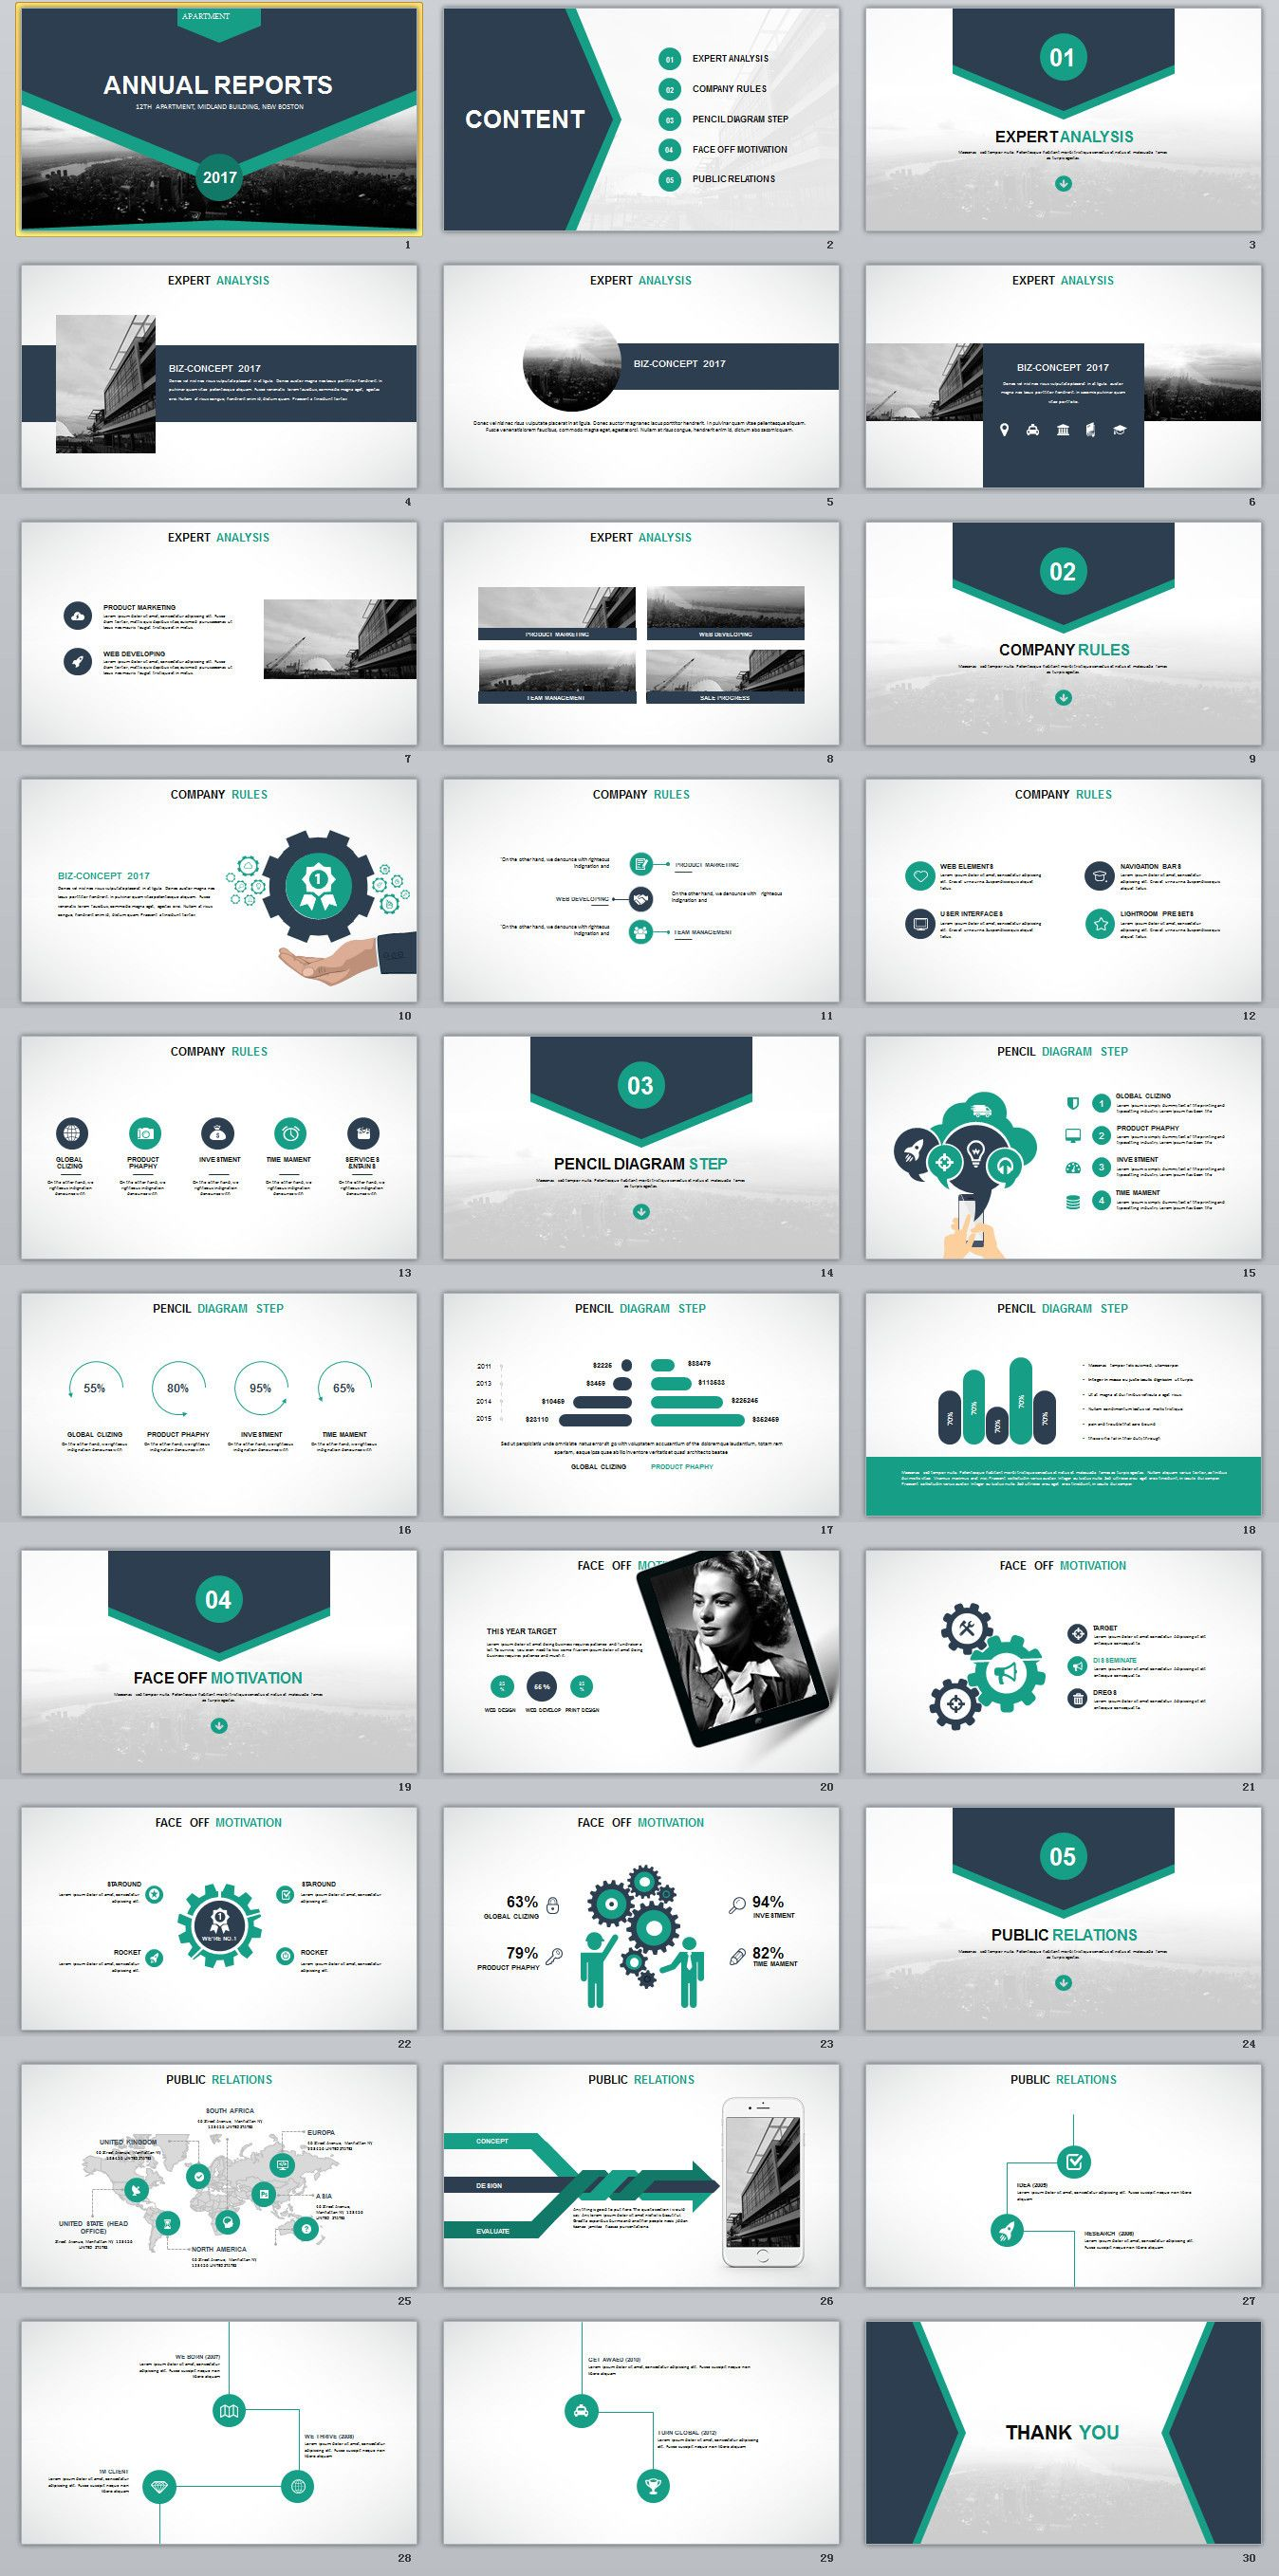 30 slide blue annual report powerpoint templates on behance 30 slide blue annual report powerpoint templates on behance toneelgroepblik Choice Image